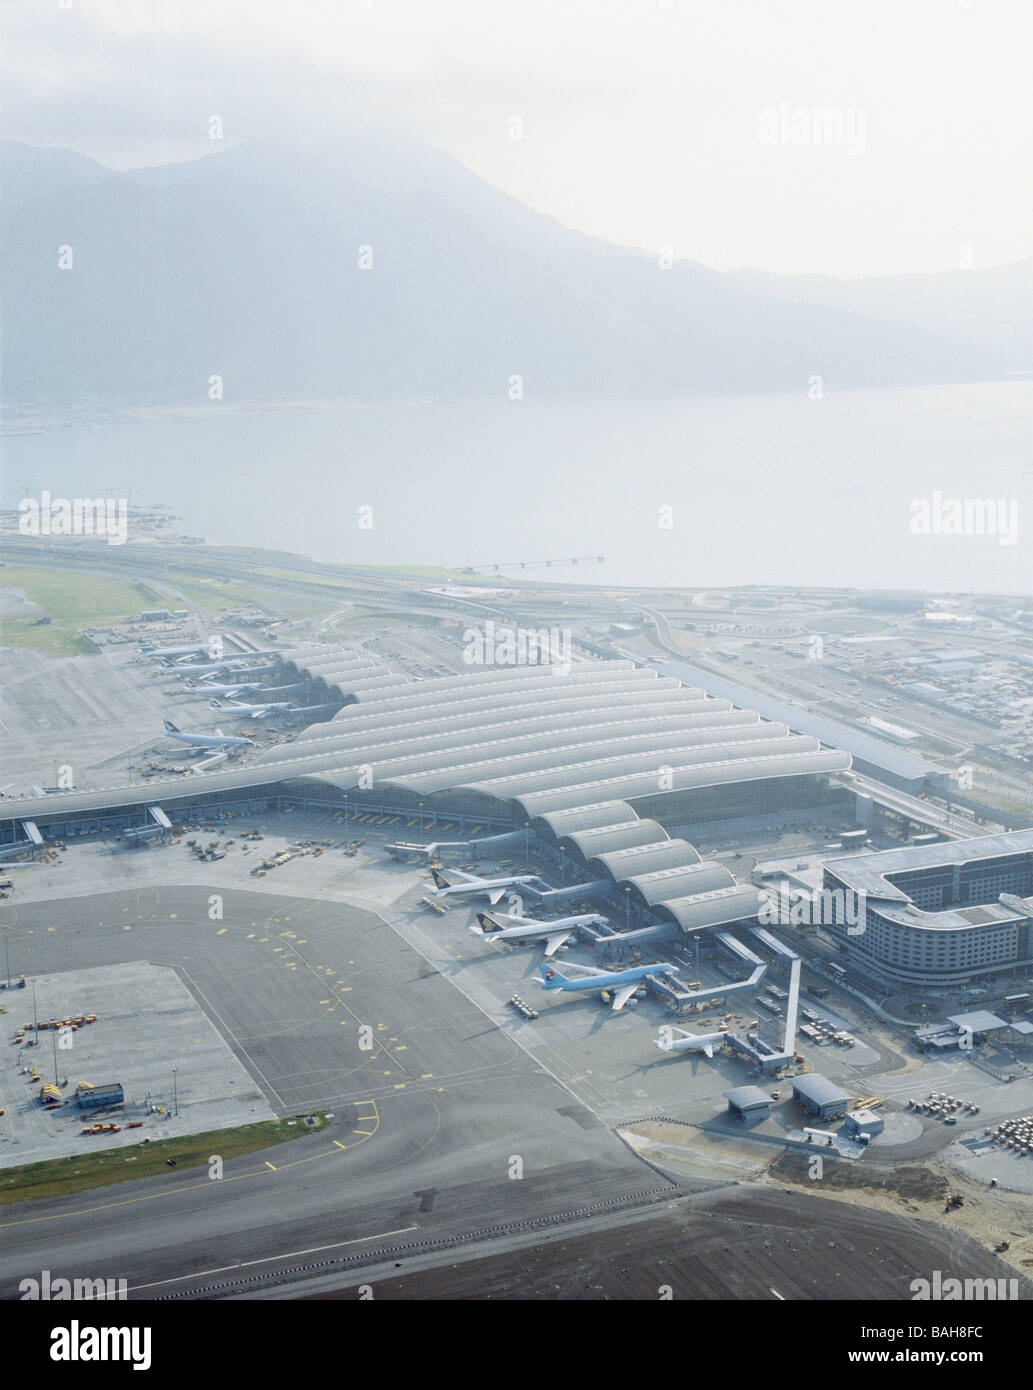 Chek Lap Kok Hong Kong International Airport, Hong Kong, Hong Kong, Foster and Partners, Chek lap kok hong kong - Stock Image